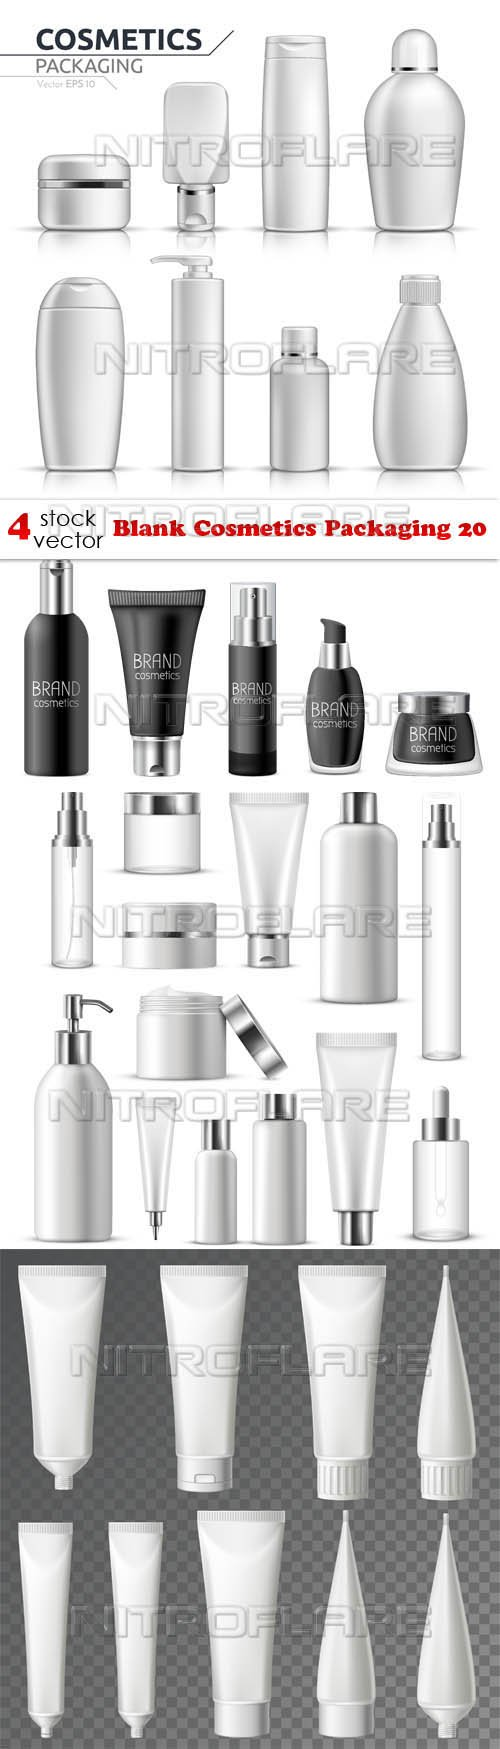 Vectors - Blank Cosmetics Packaging 20